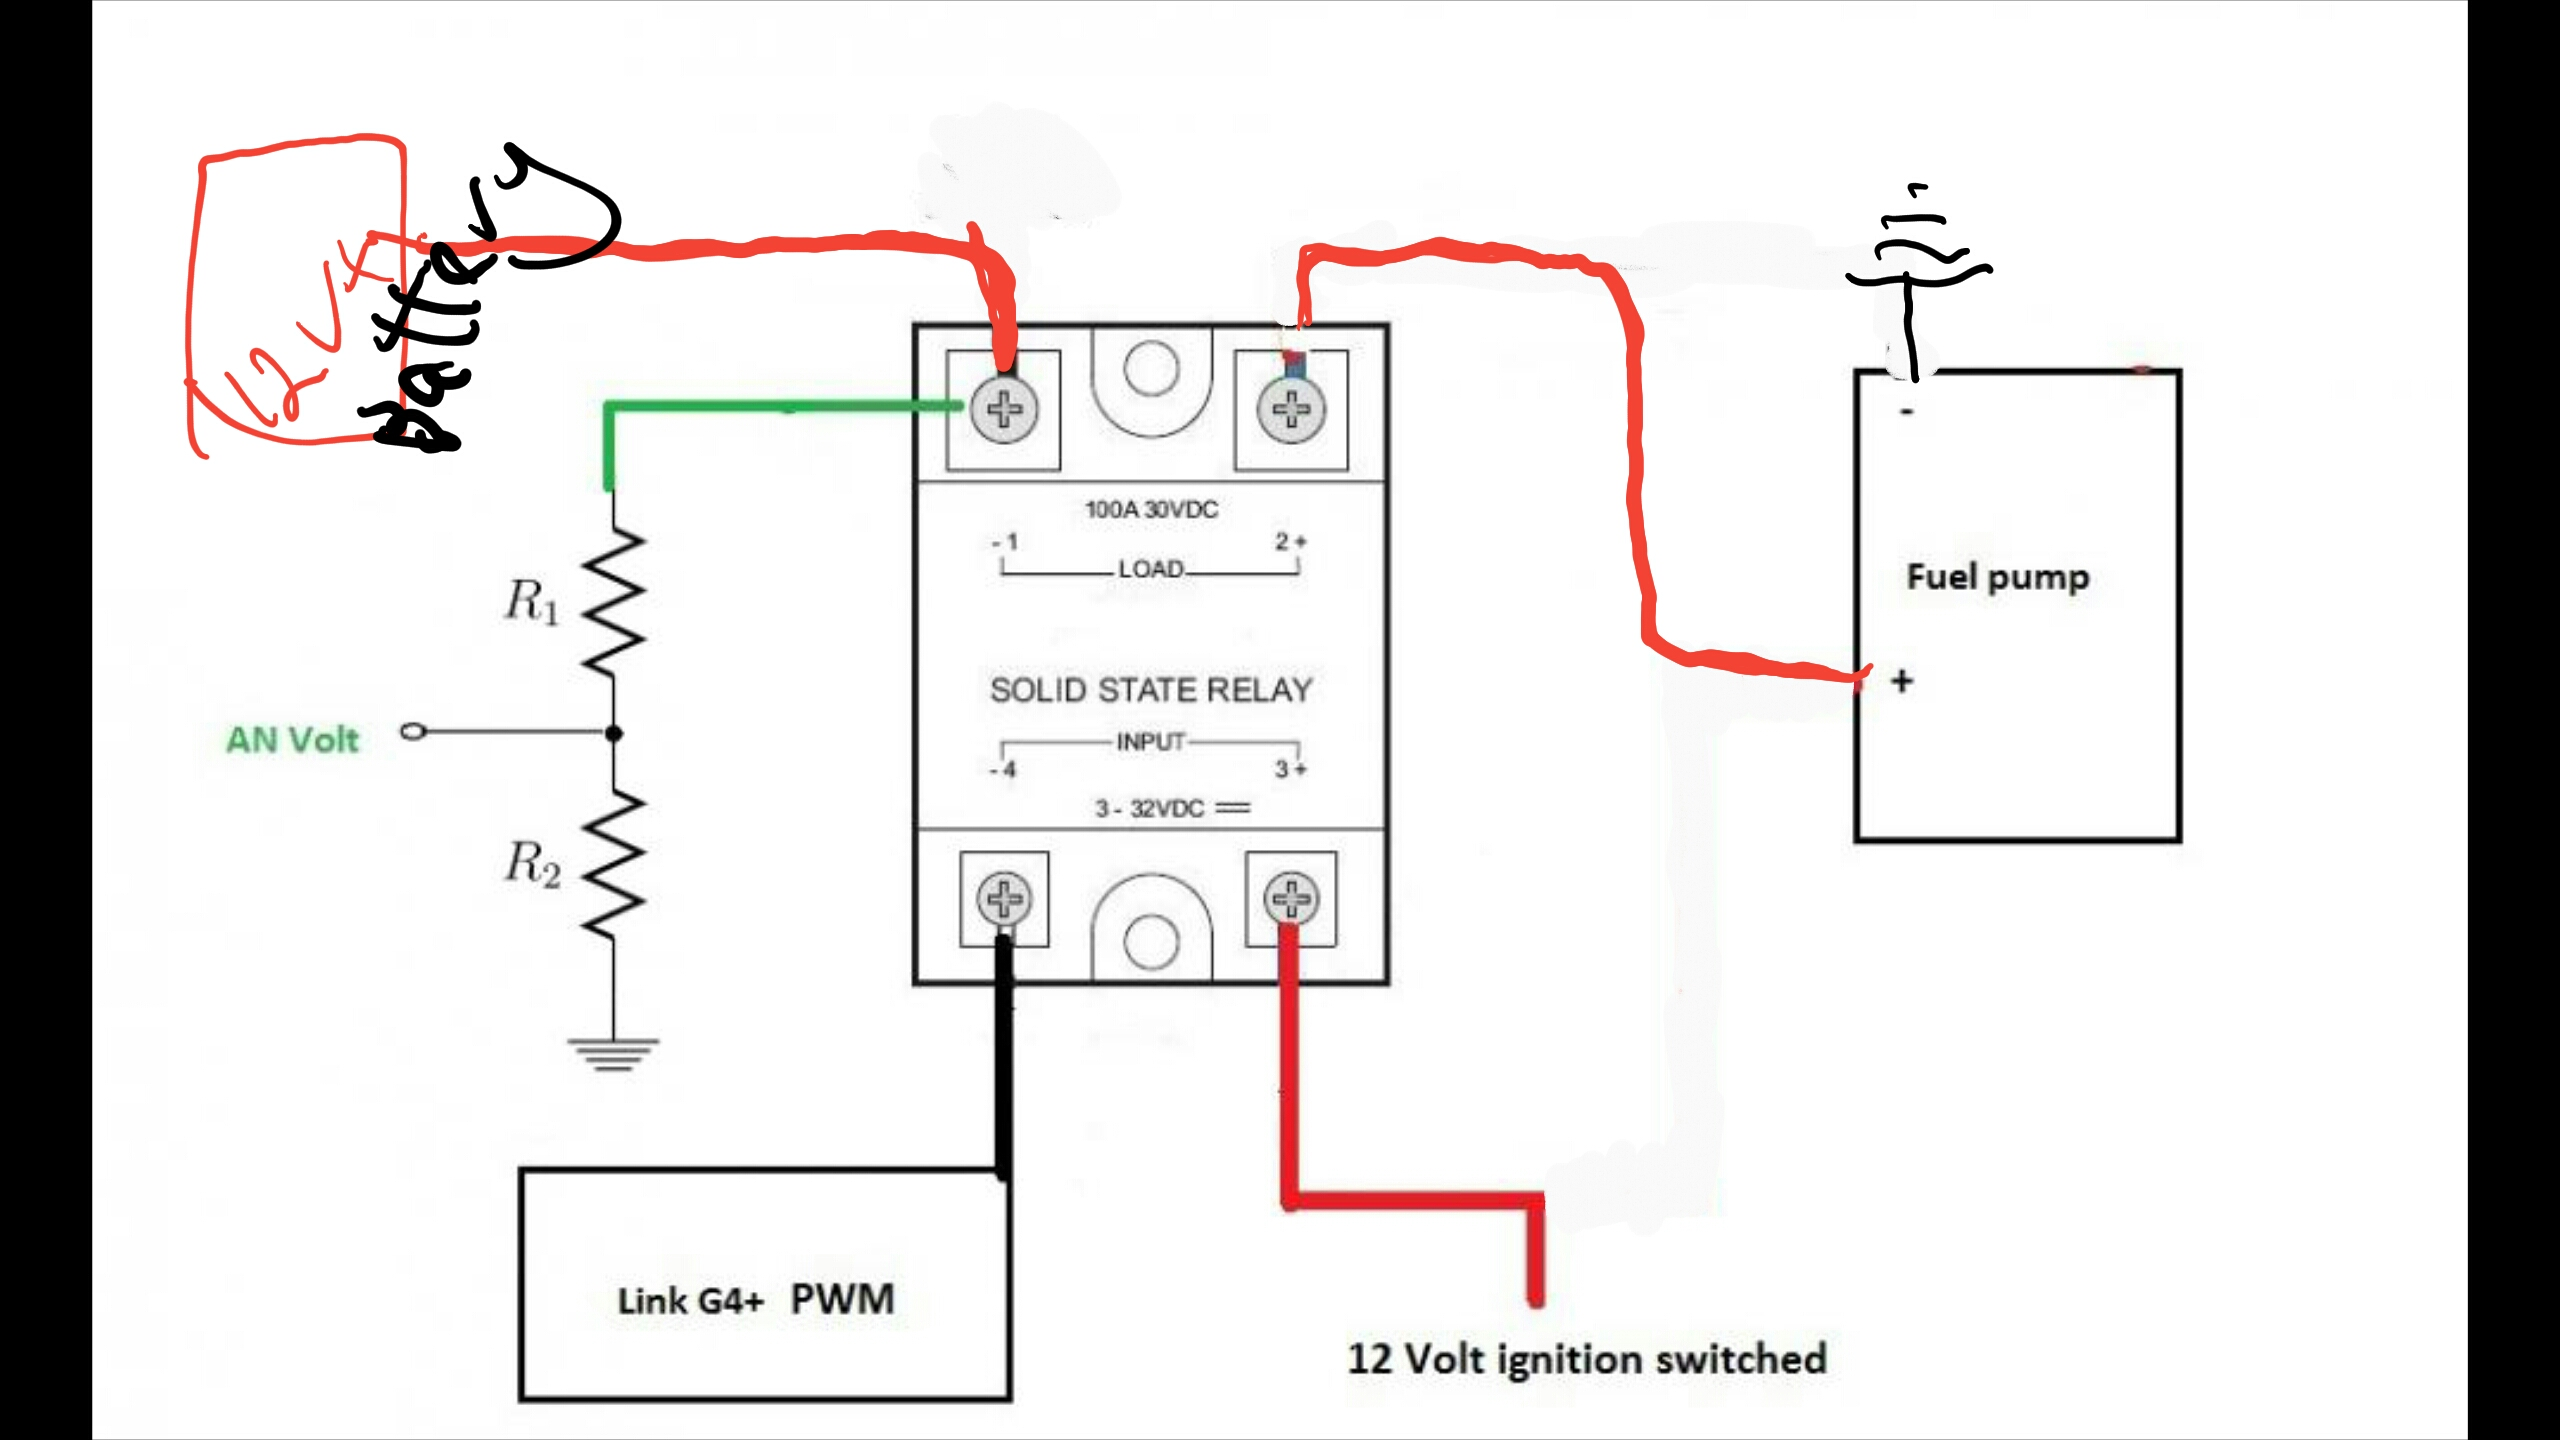 [DIAGRAM_5UK]  TG_6937] Wiring An Ssr Download Diagram | Abb Solid State Relay Wiring Diagram |  | Xero Alypt Trua Sand Awni Eopsy Peted Oidei Vira Mohammedshrine Librar  Wiring 101